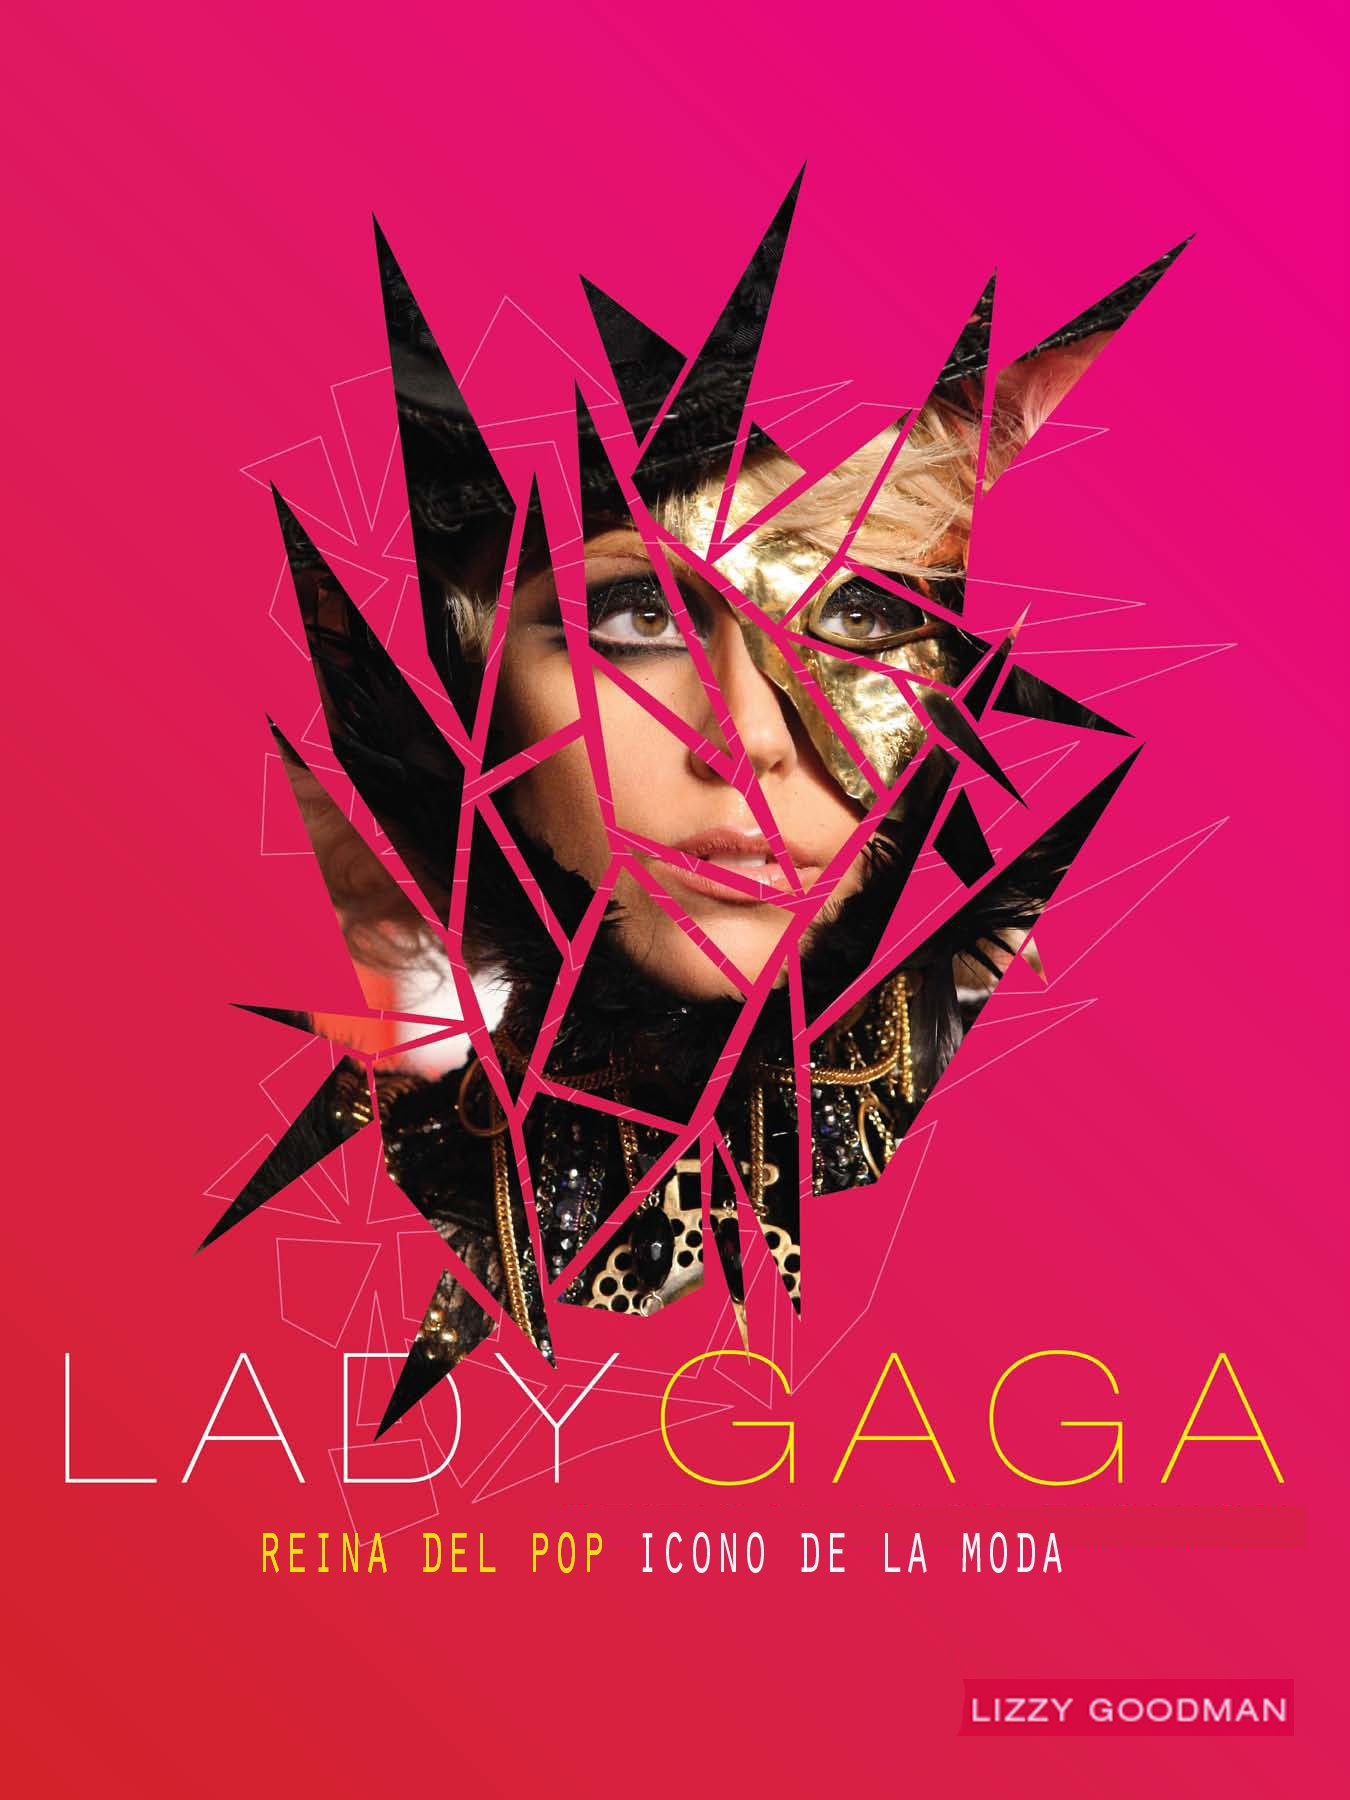 LADY GAGA MUSICA-CI (Spanish) Paperback – January 1, 1900